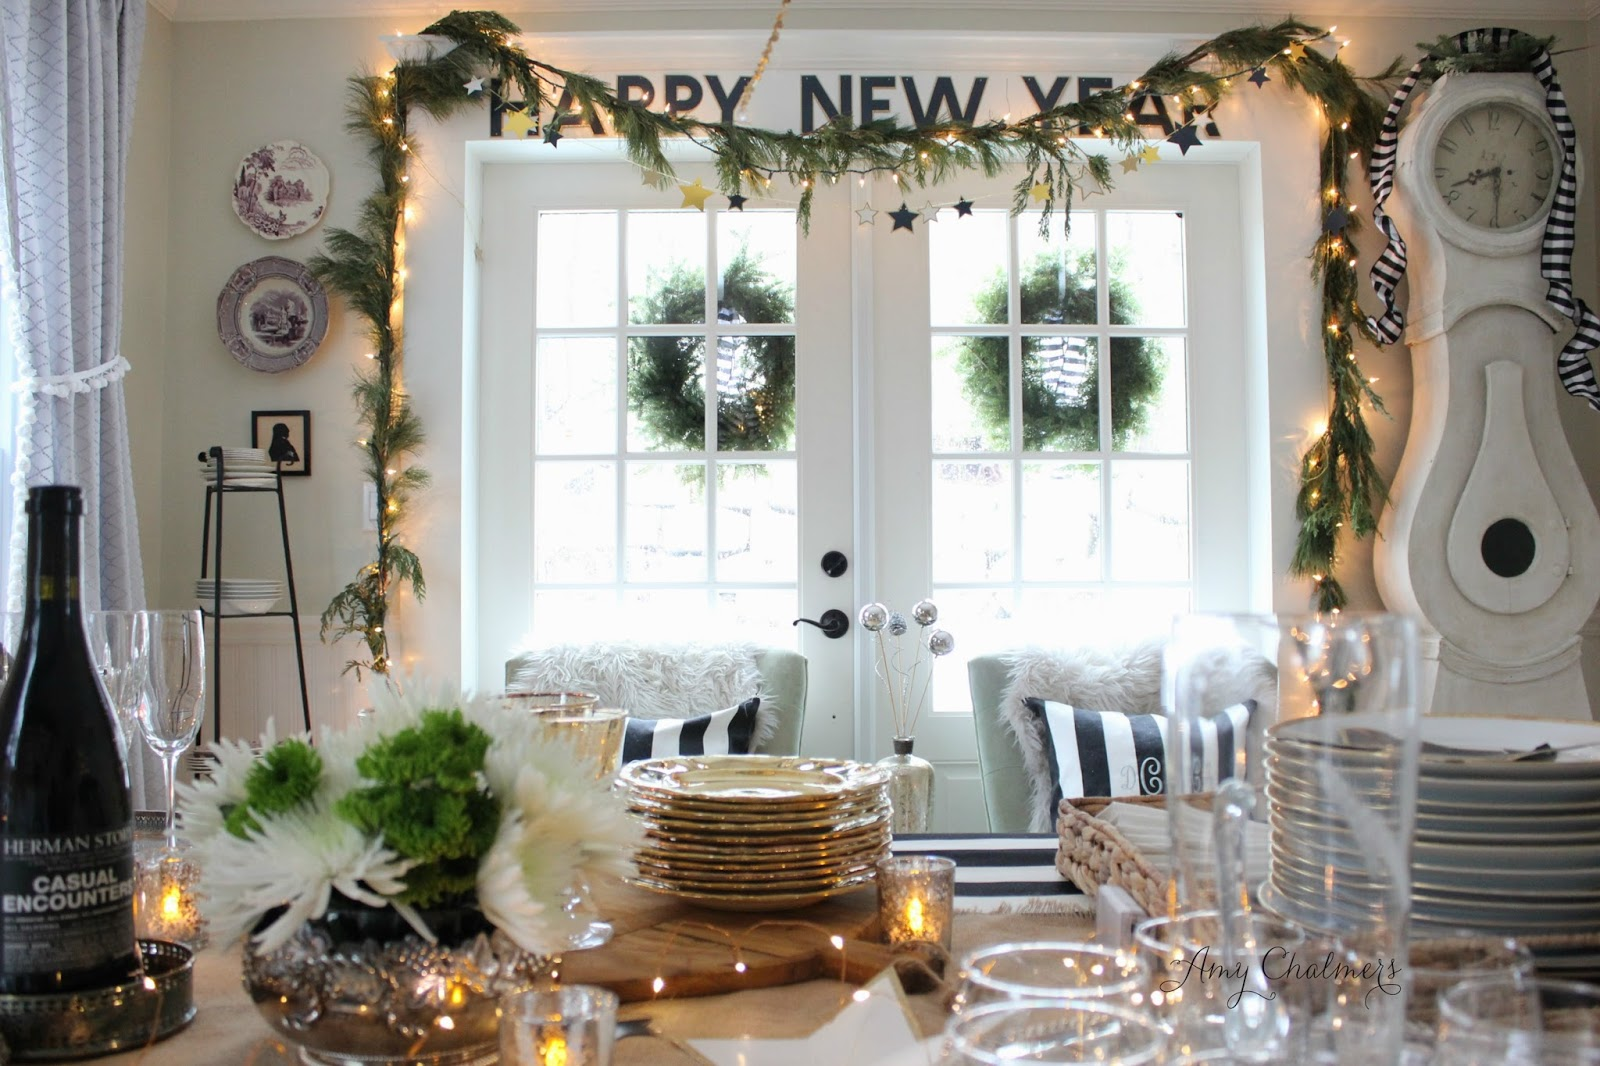 maison and decoration - maison decor a glittery new years eve affair